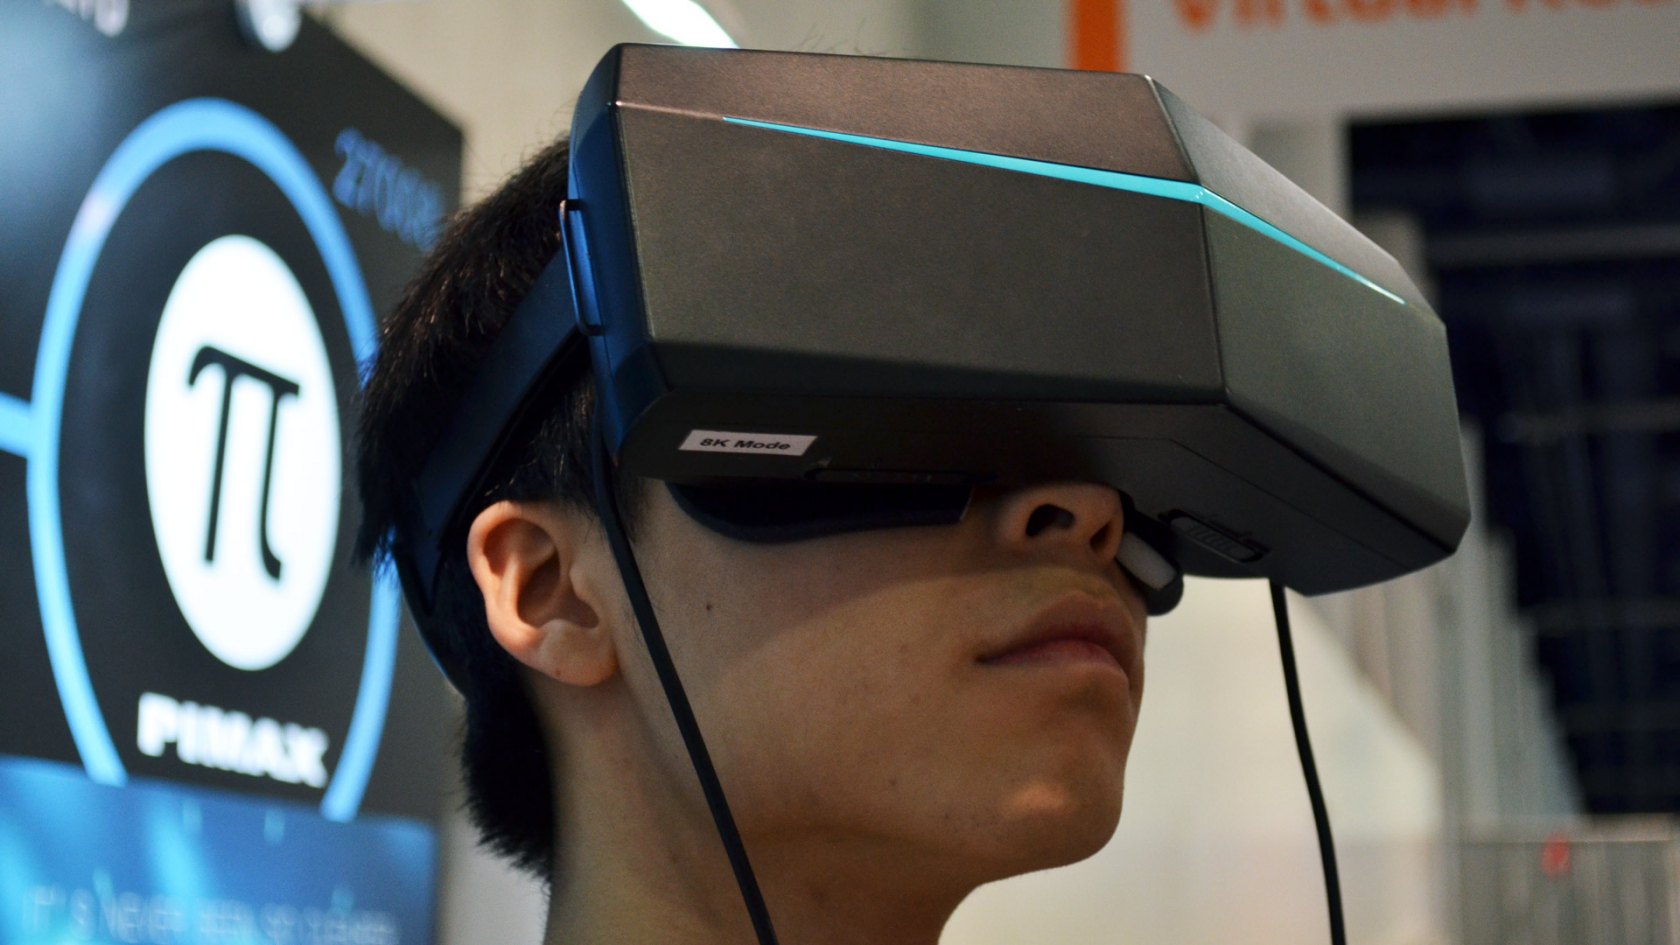 '8K' VR headset in the works by Chinese startup Pimax